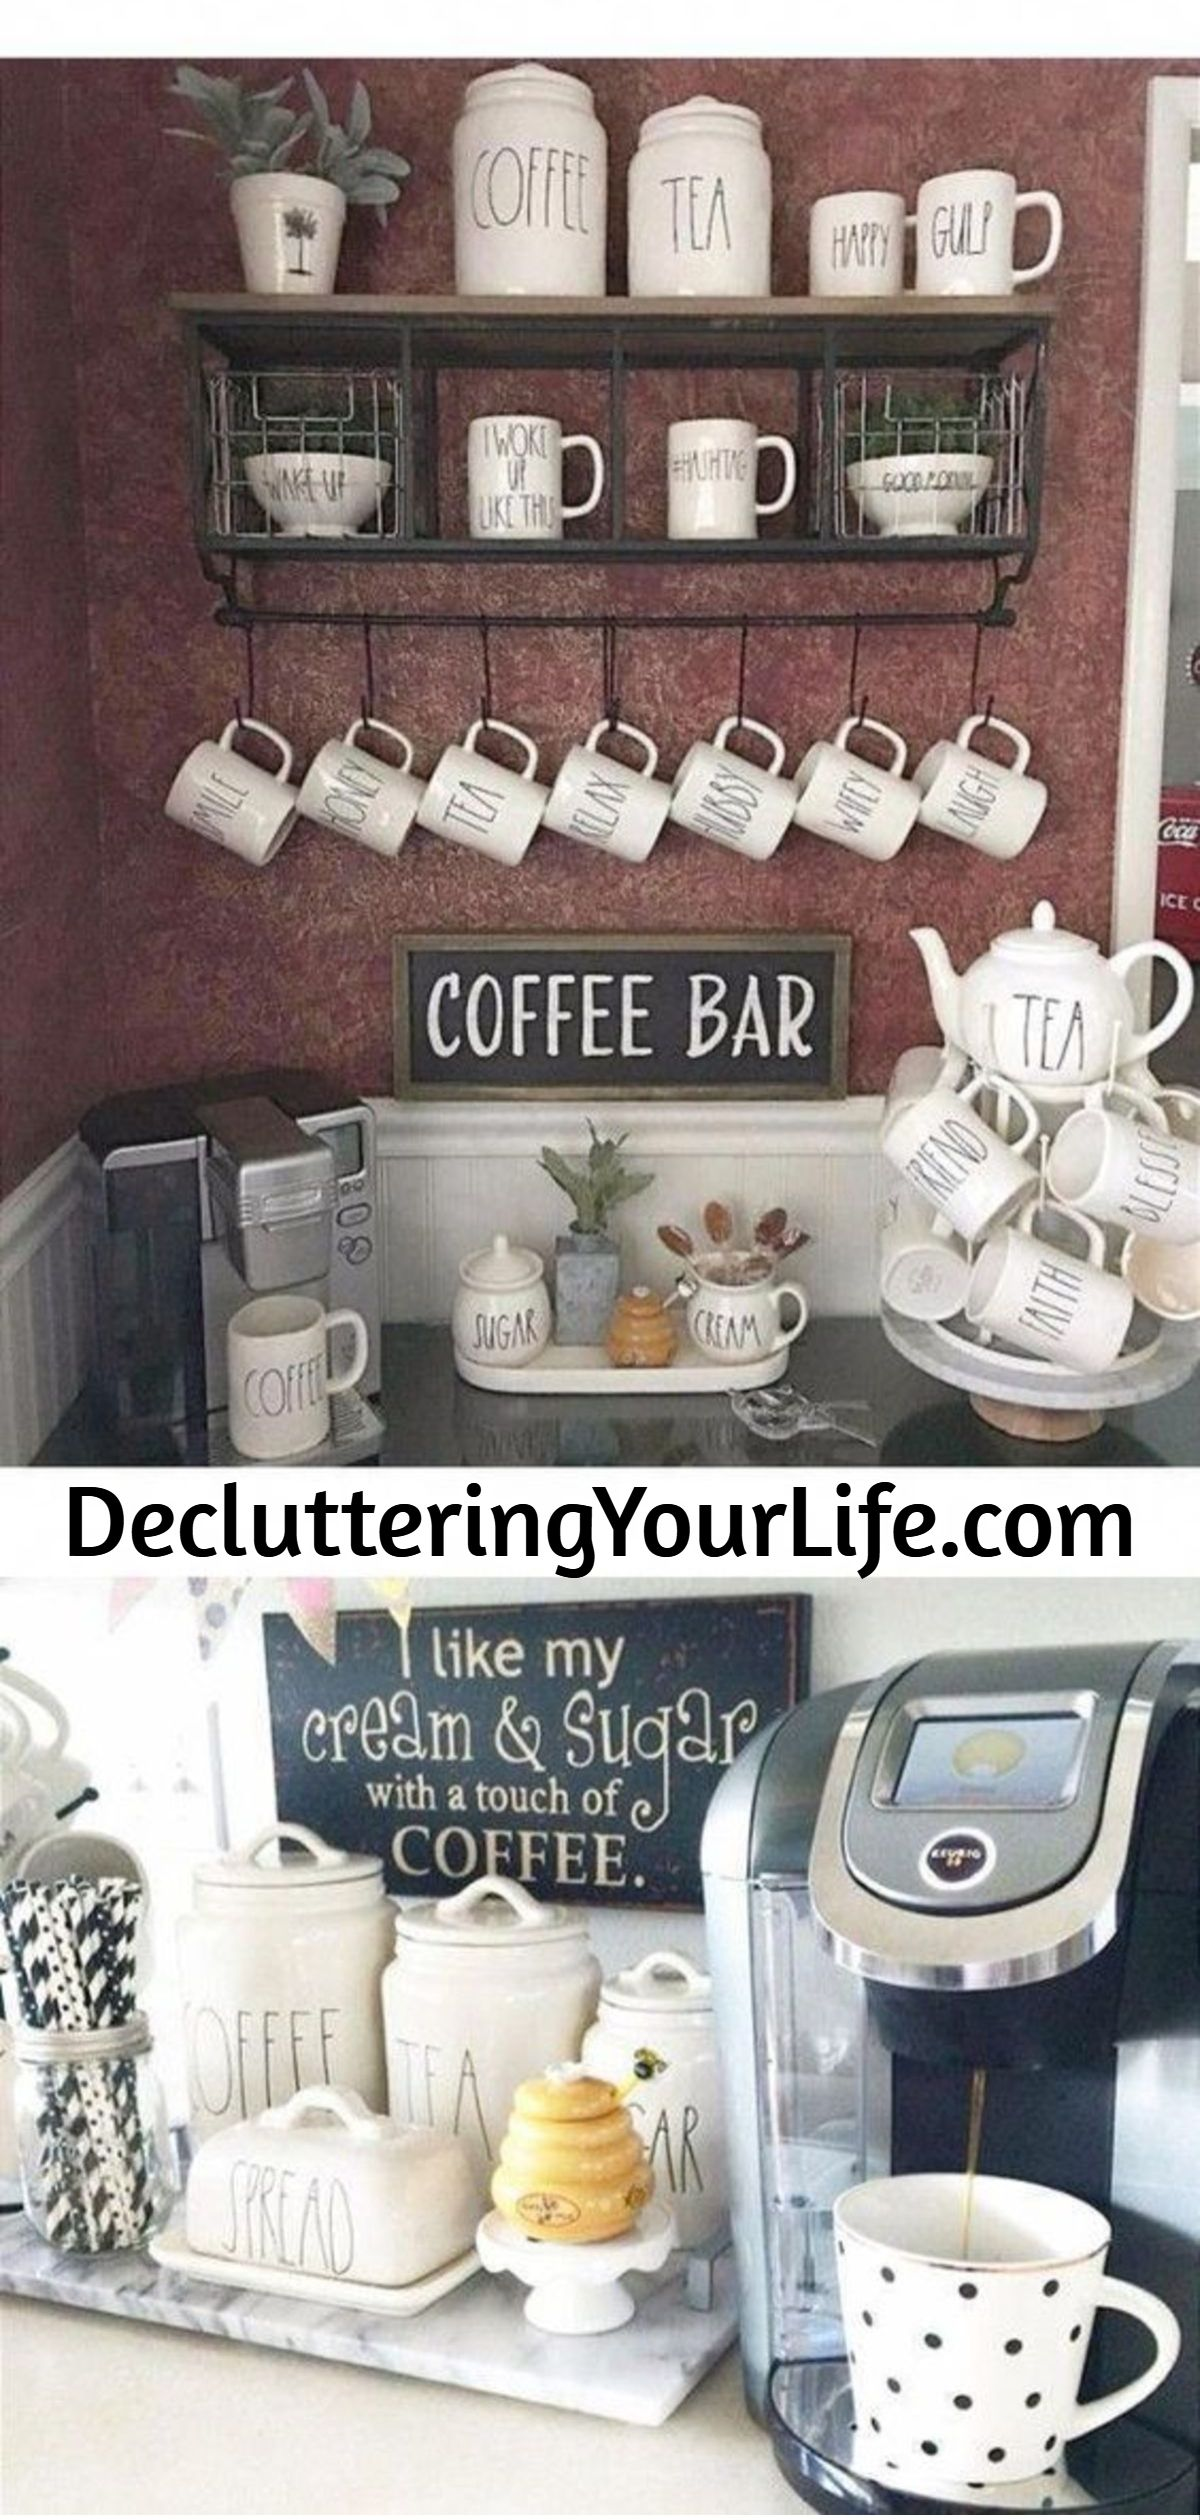 Diy Coffee Bar Ideas Stunning Farmhouse Style Beverage Stations For Small Spaces And Tiny Kitchens Decluttering Your Life Diy Coffee Bar Coffee Bars In Kitchen Coffee Area